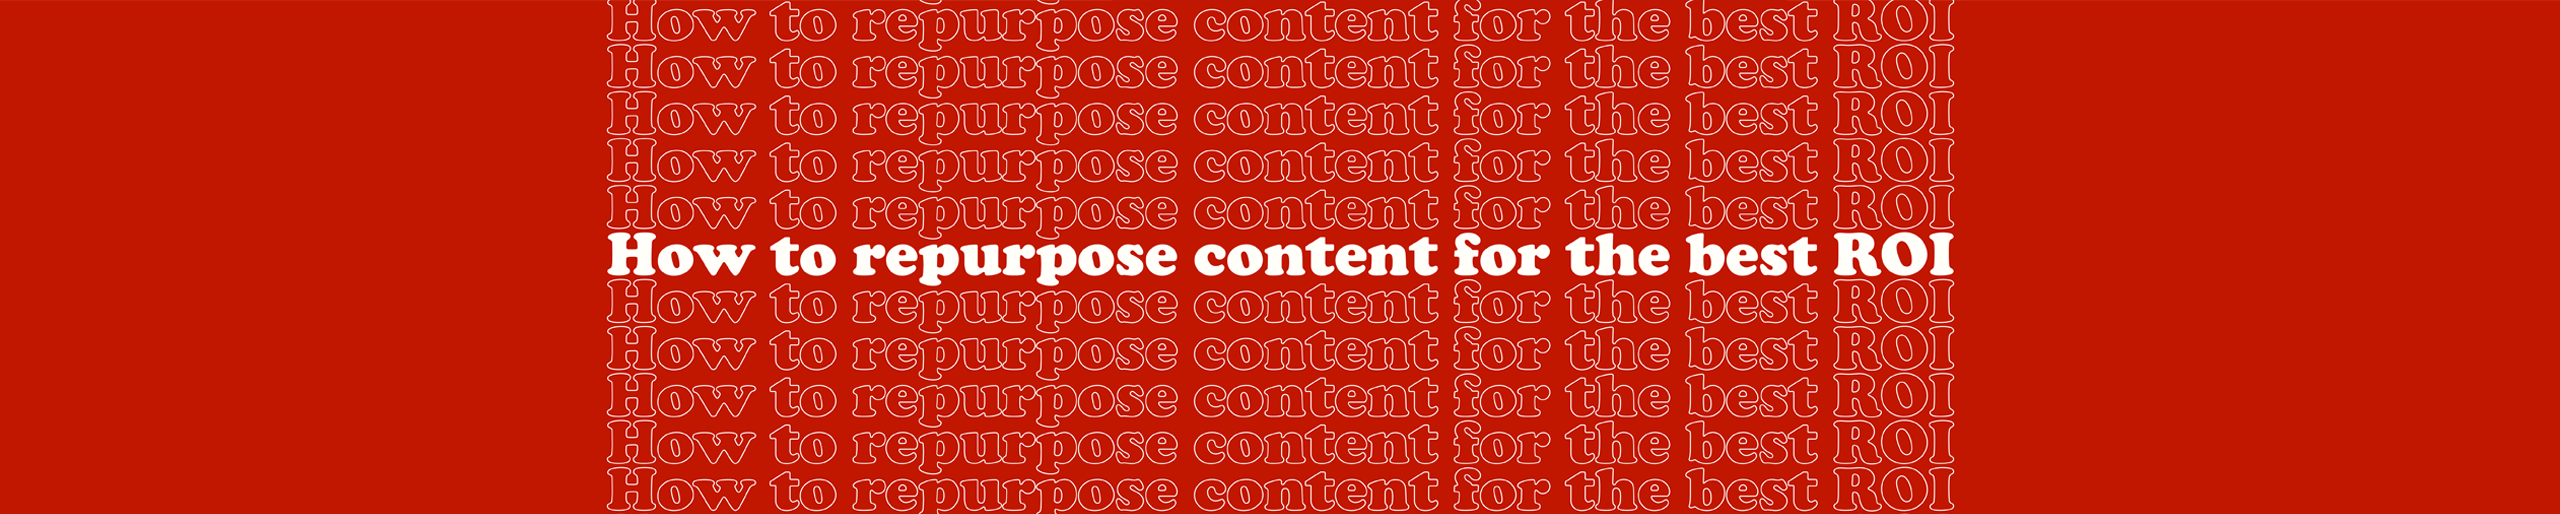 content marketing How to repurpose content for the best ROI